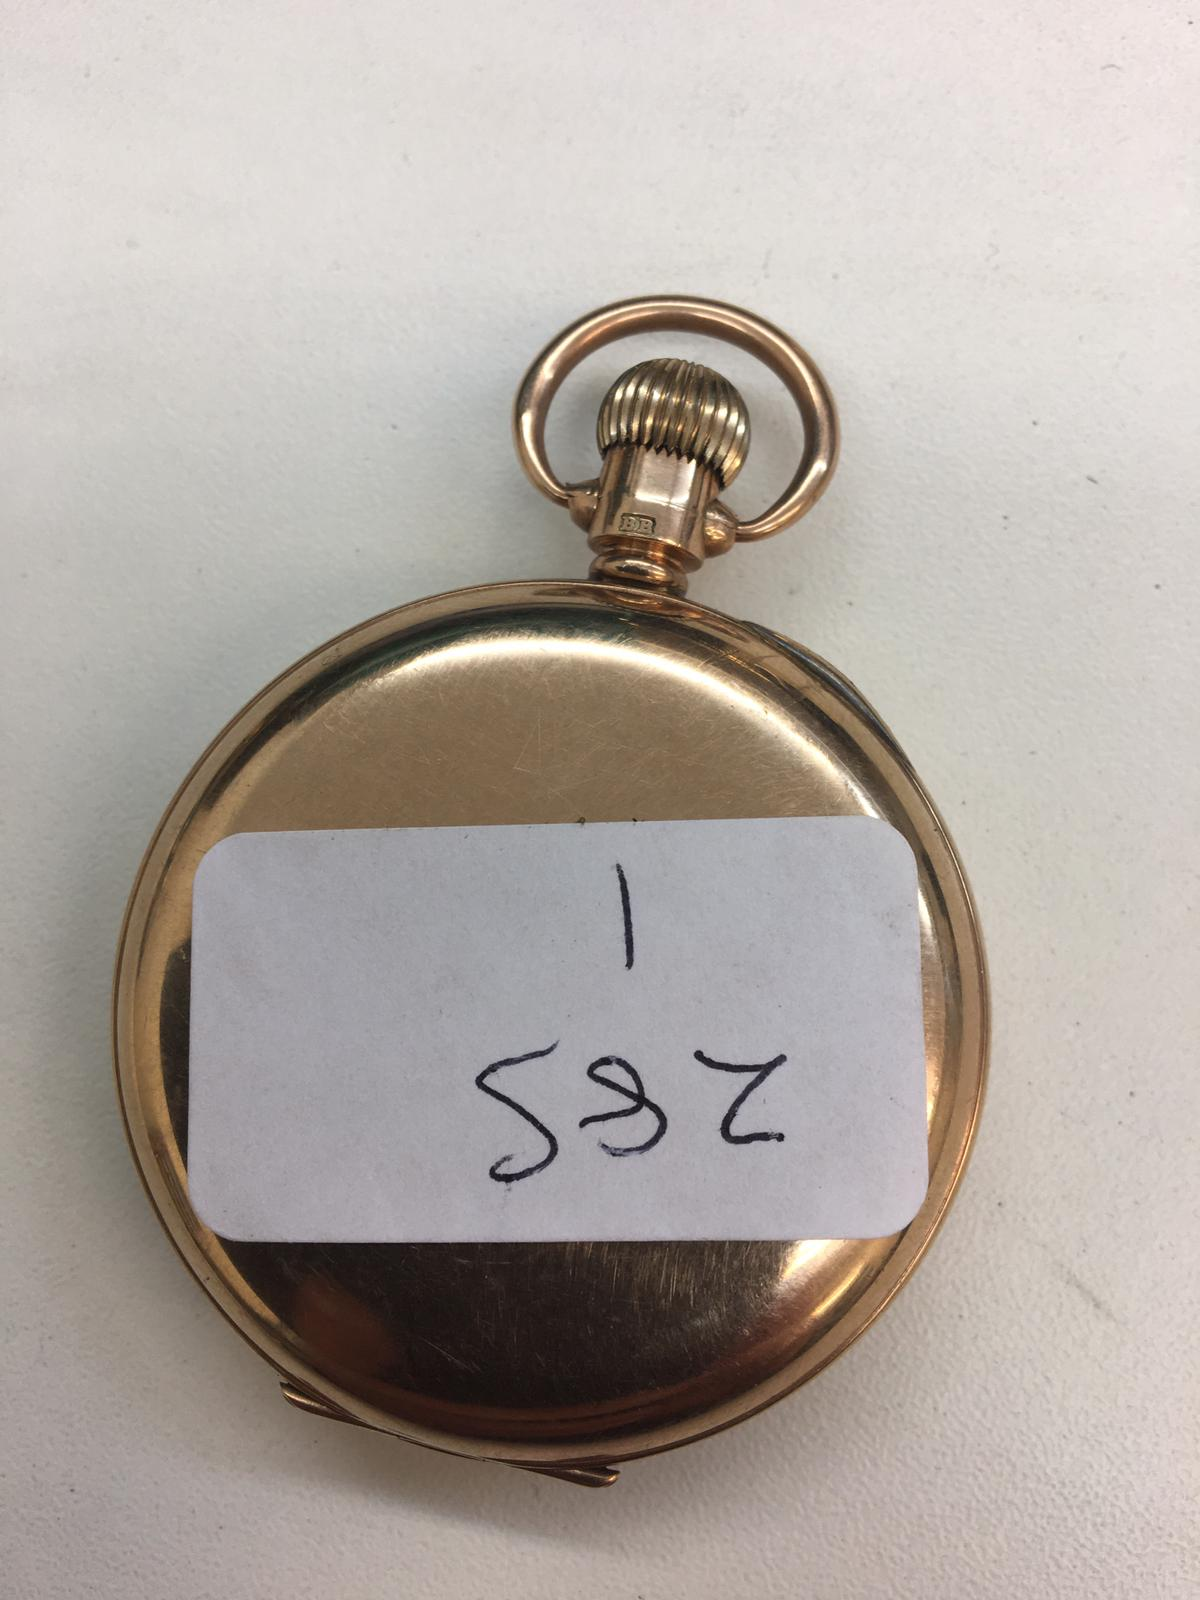 9ct gold pocket watch with gold dust cover full working order, dial clean total weight 71.6g - Image 2 of 2